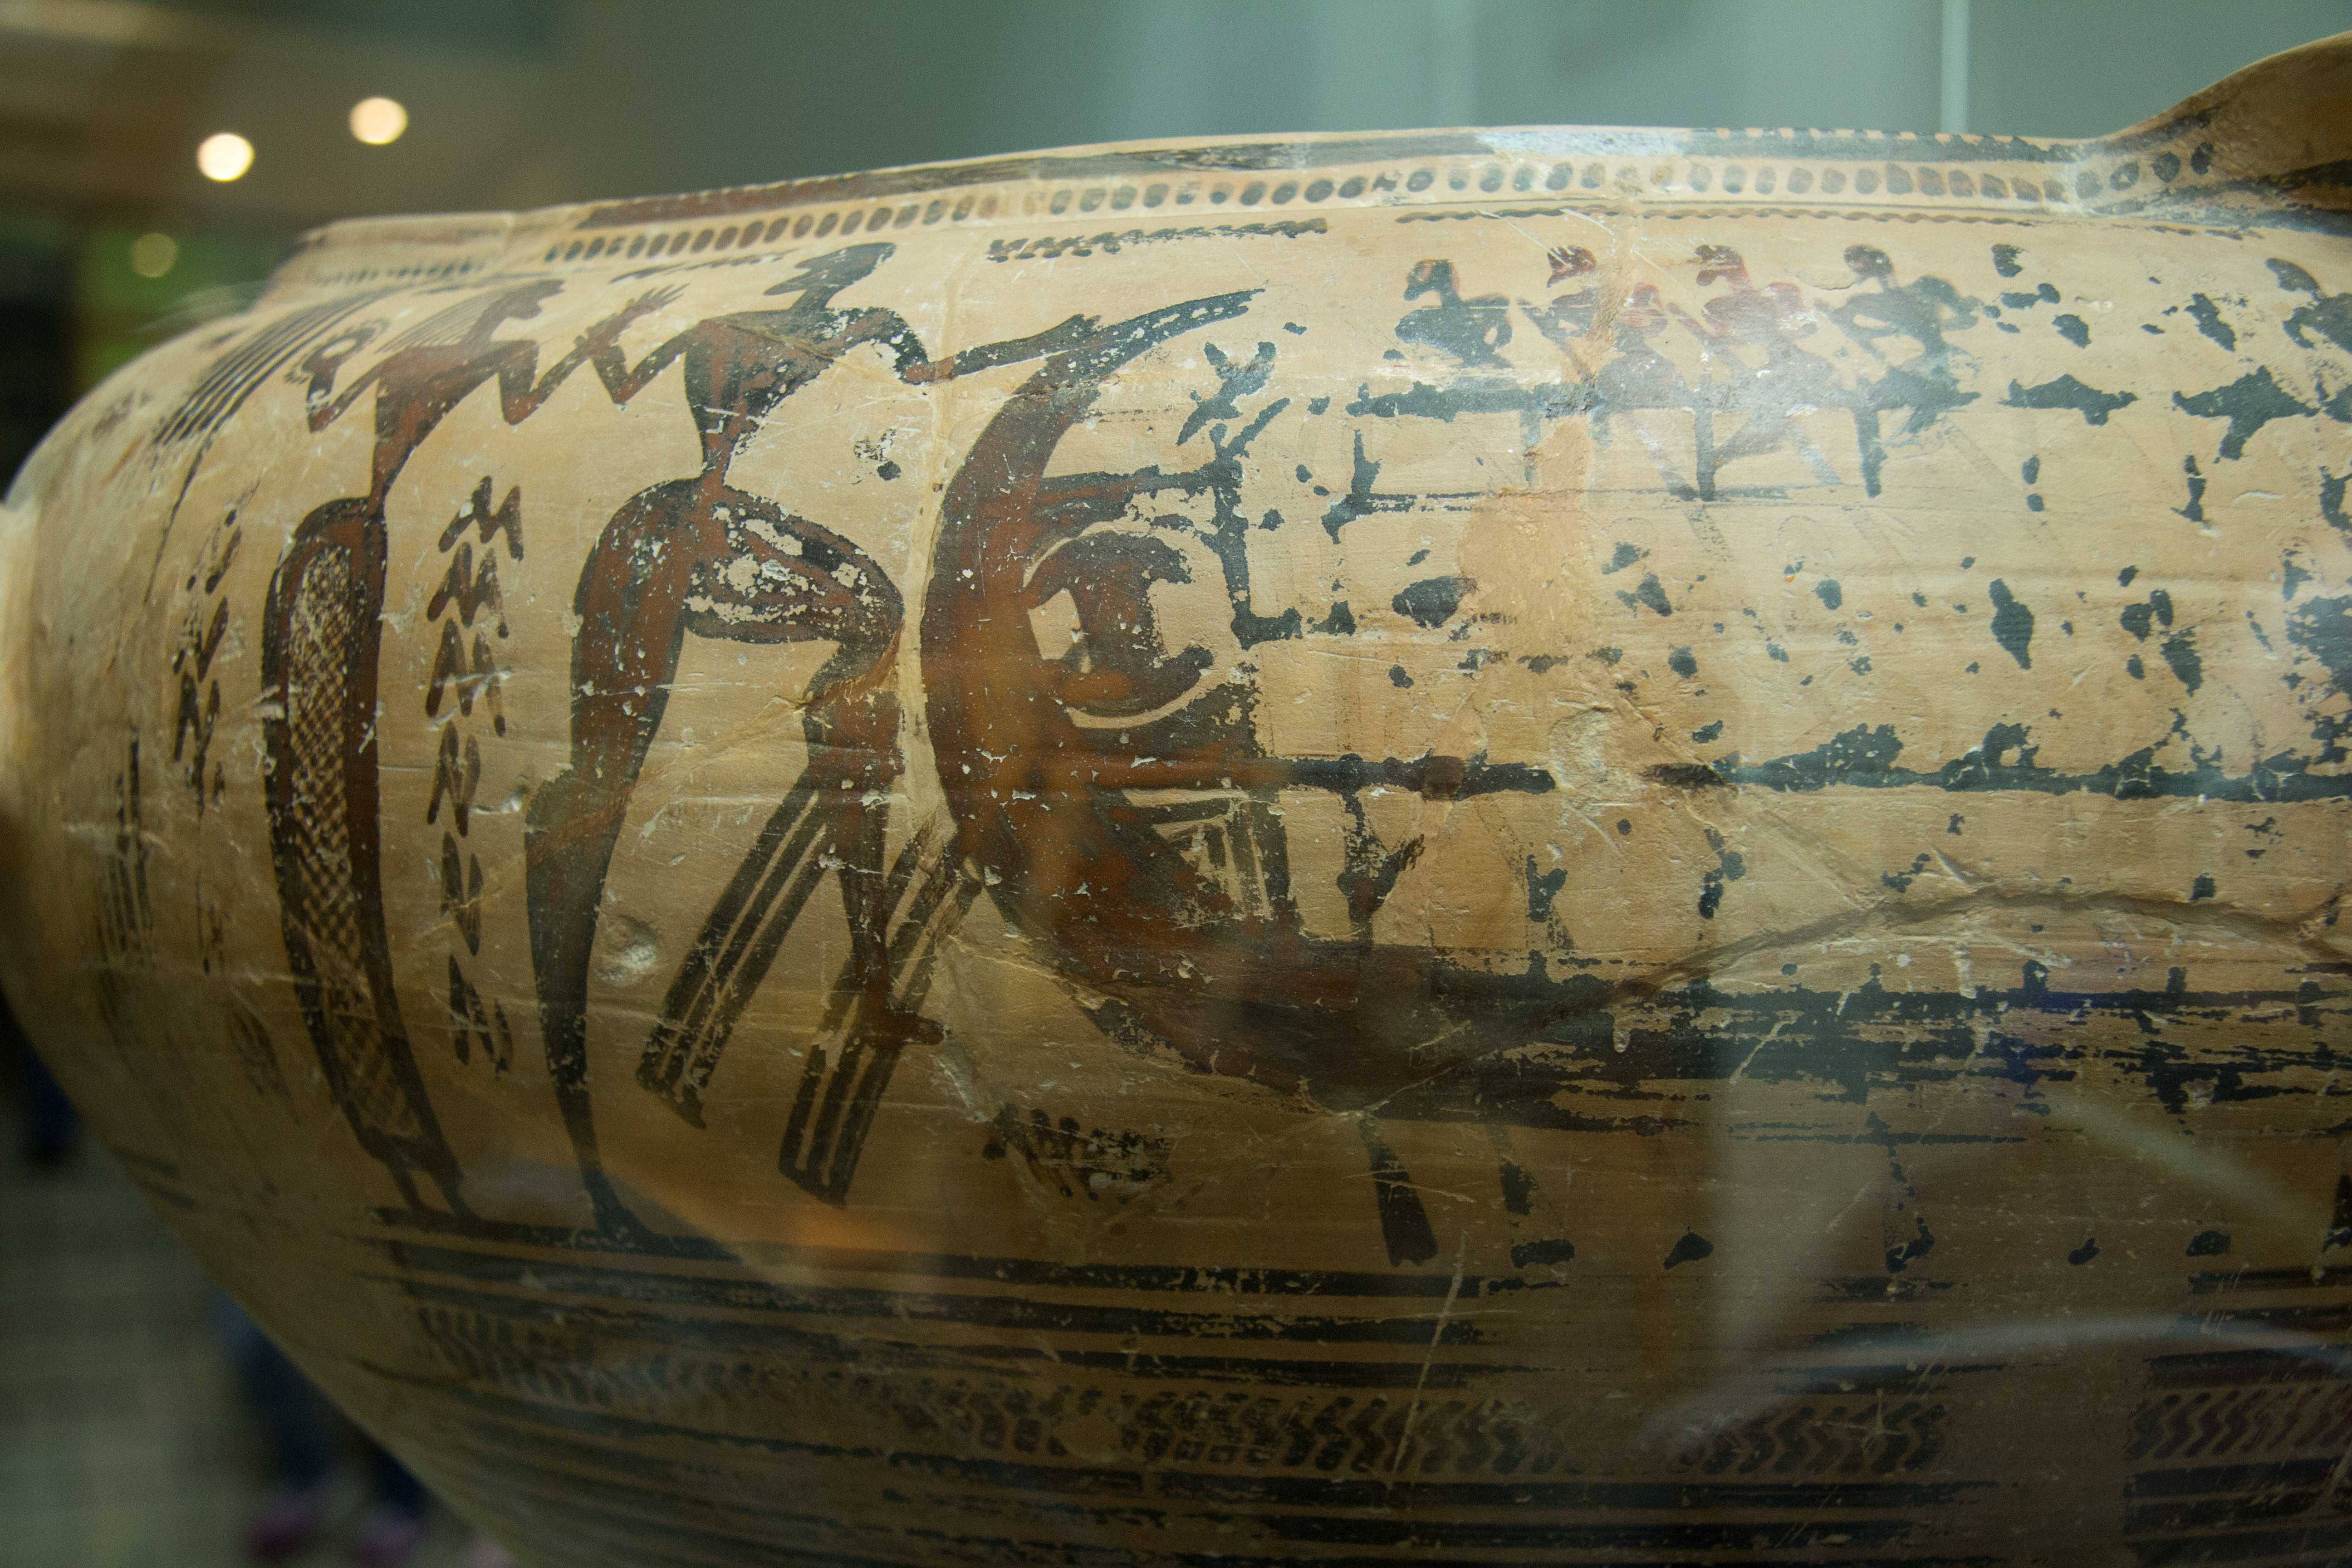 Thebes vase: detail of Ariadne and Theseus.